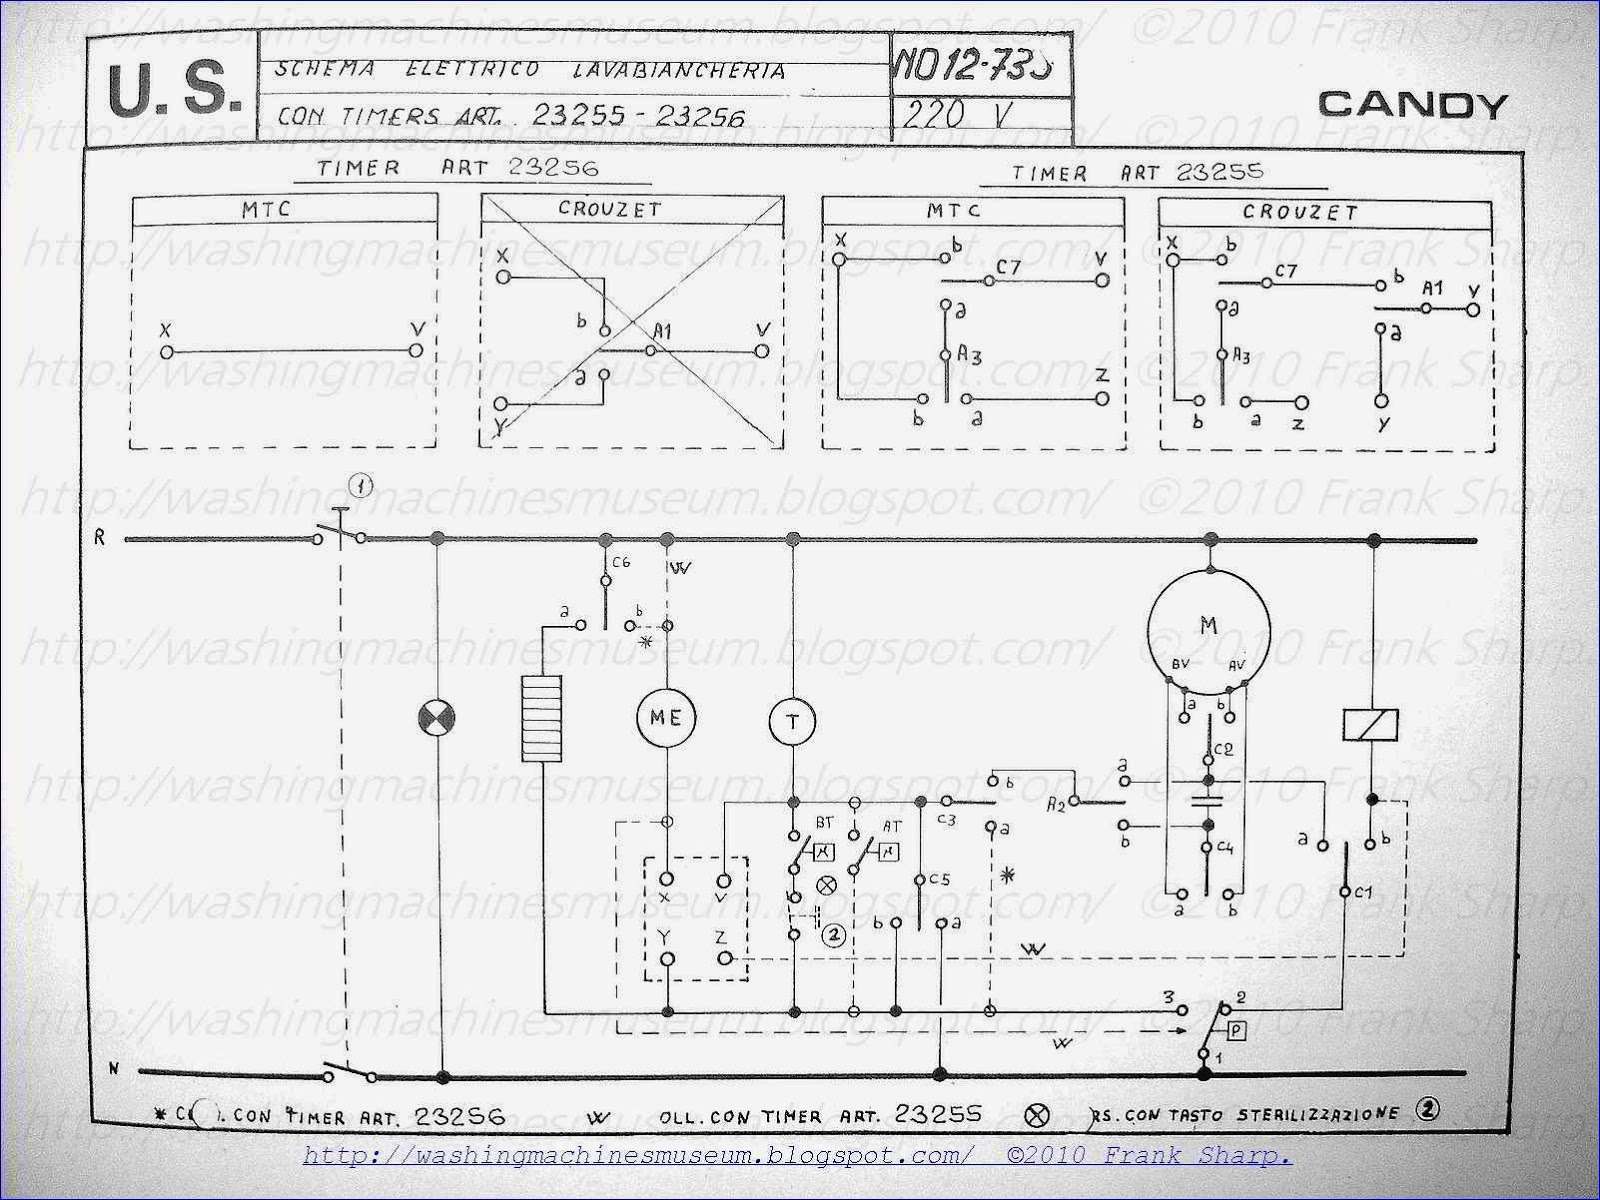 IMGH_06890__WMS diagrams 750449 wiring diagram for whirlpool dryer sample wiring diagram for whirlpool dryer at soozxer.org